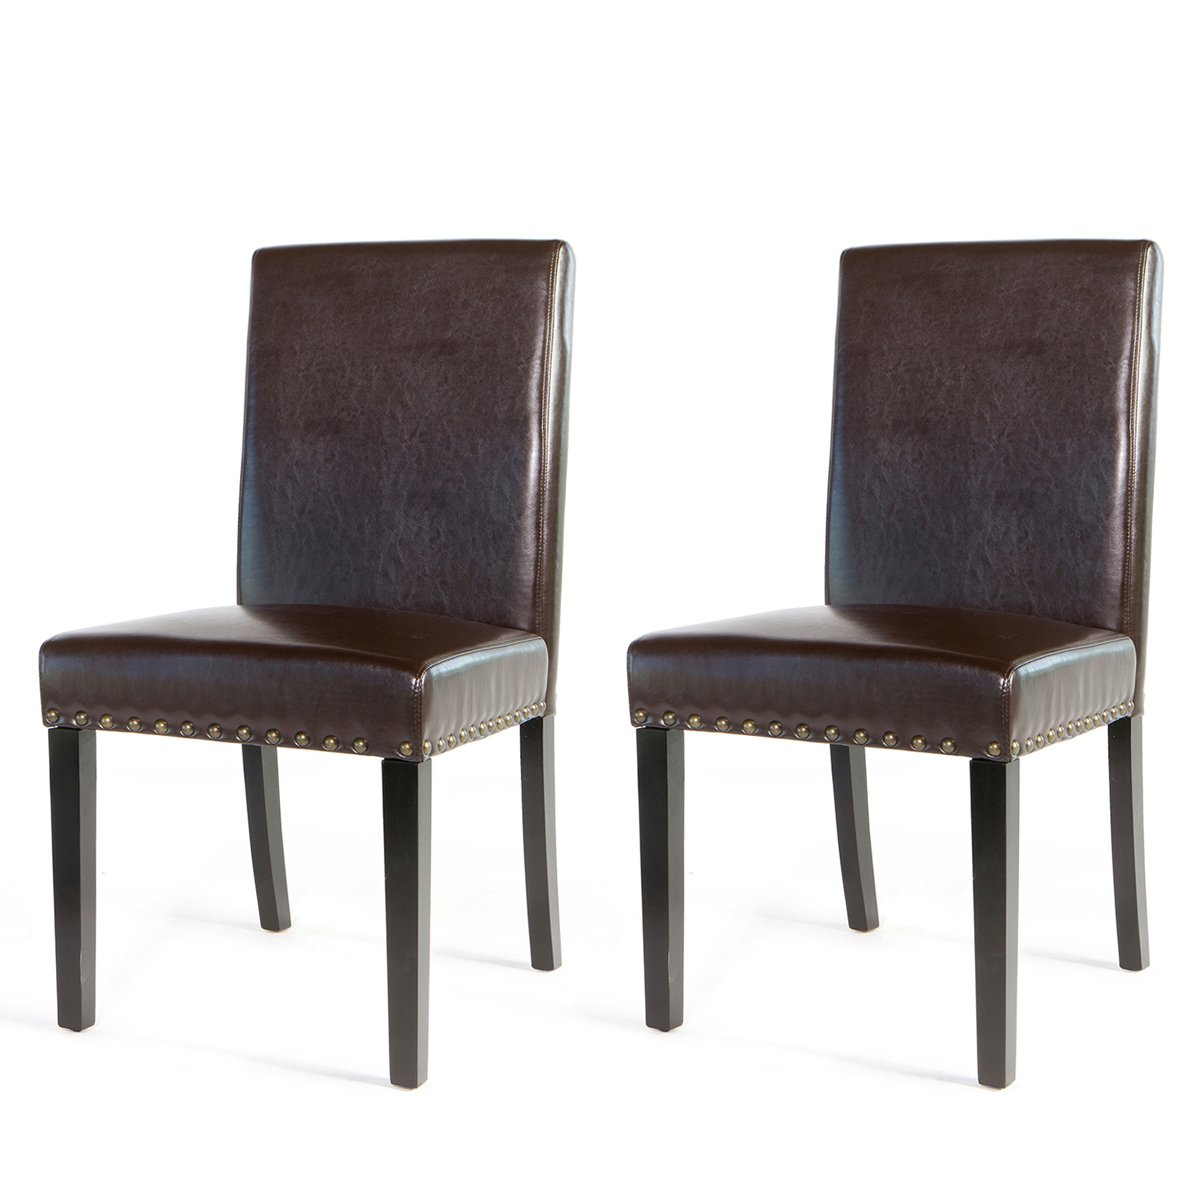 Barton Small Size Leather Stylish Dining Chair Furniture with Nailhead Trim, Set of 2 (Brown)